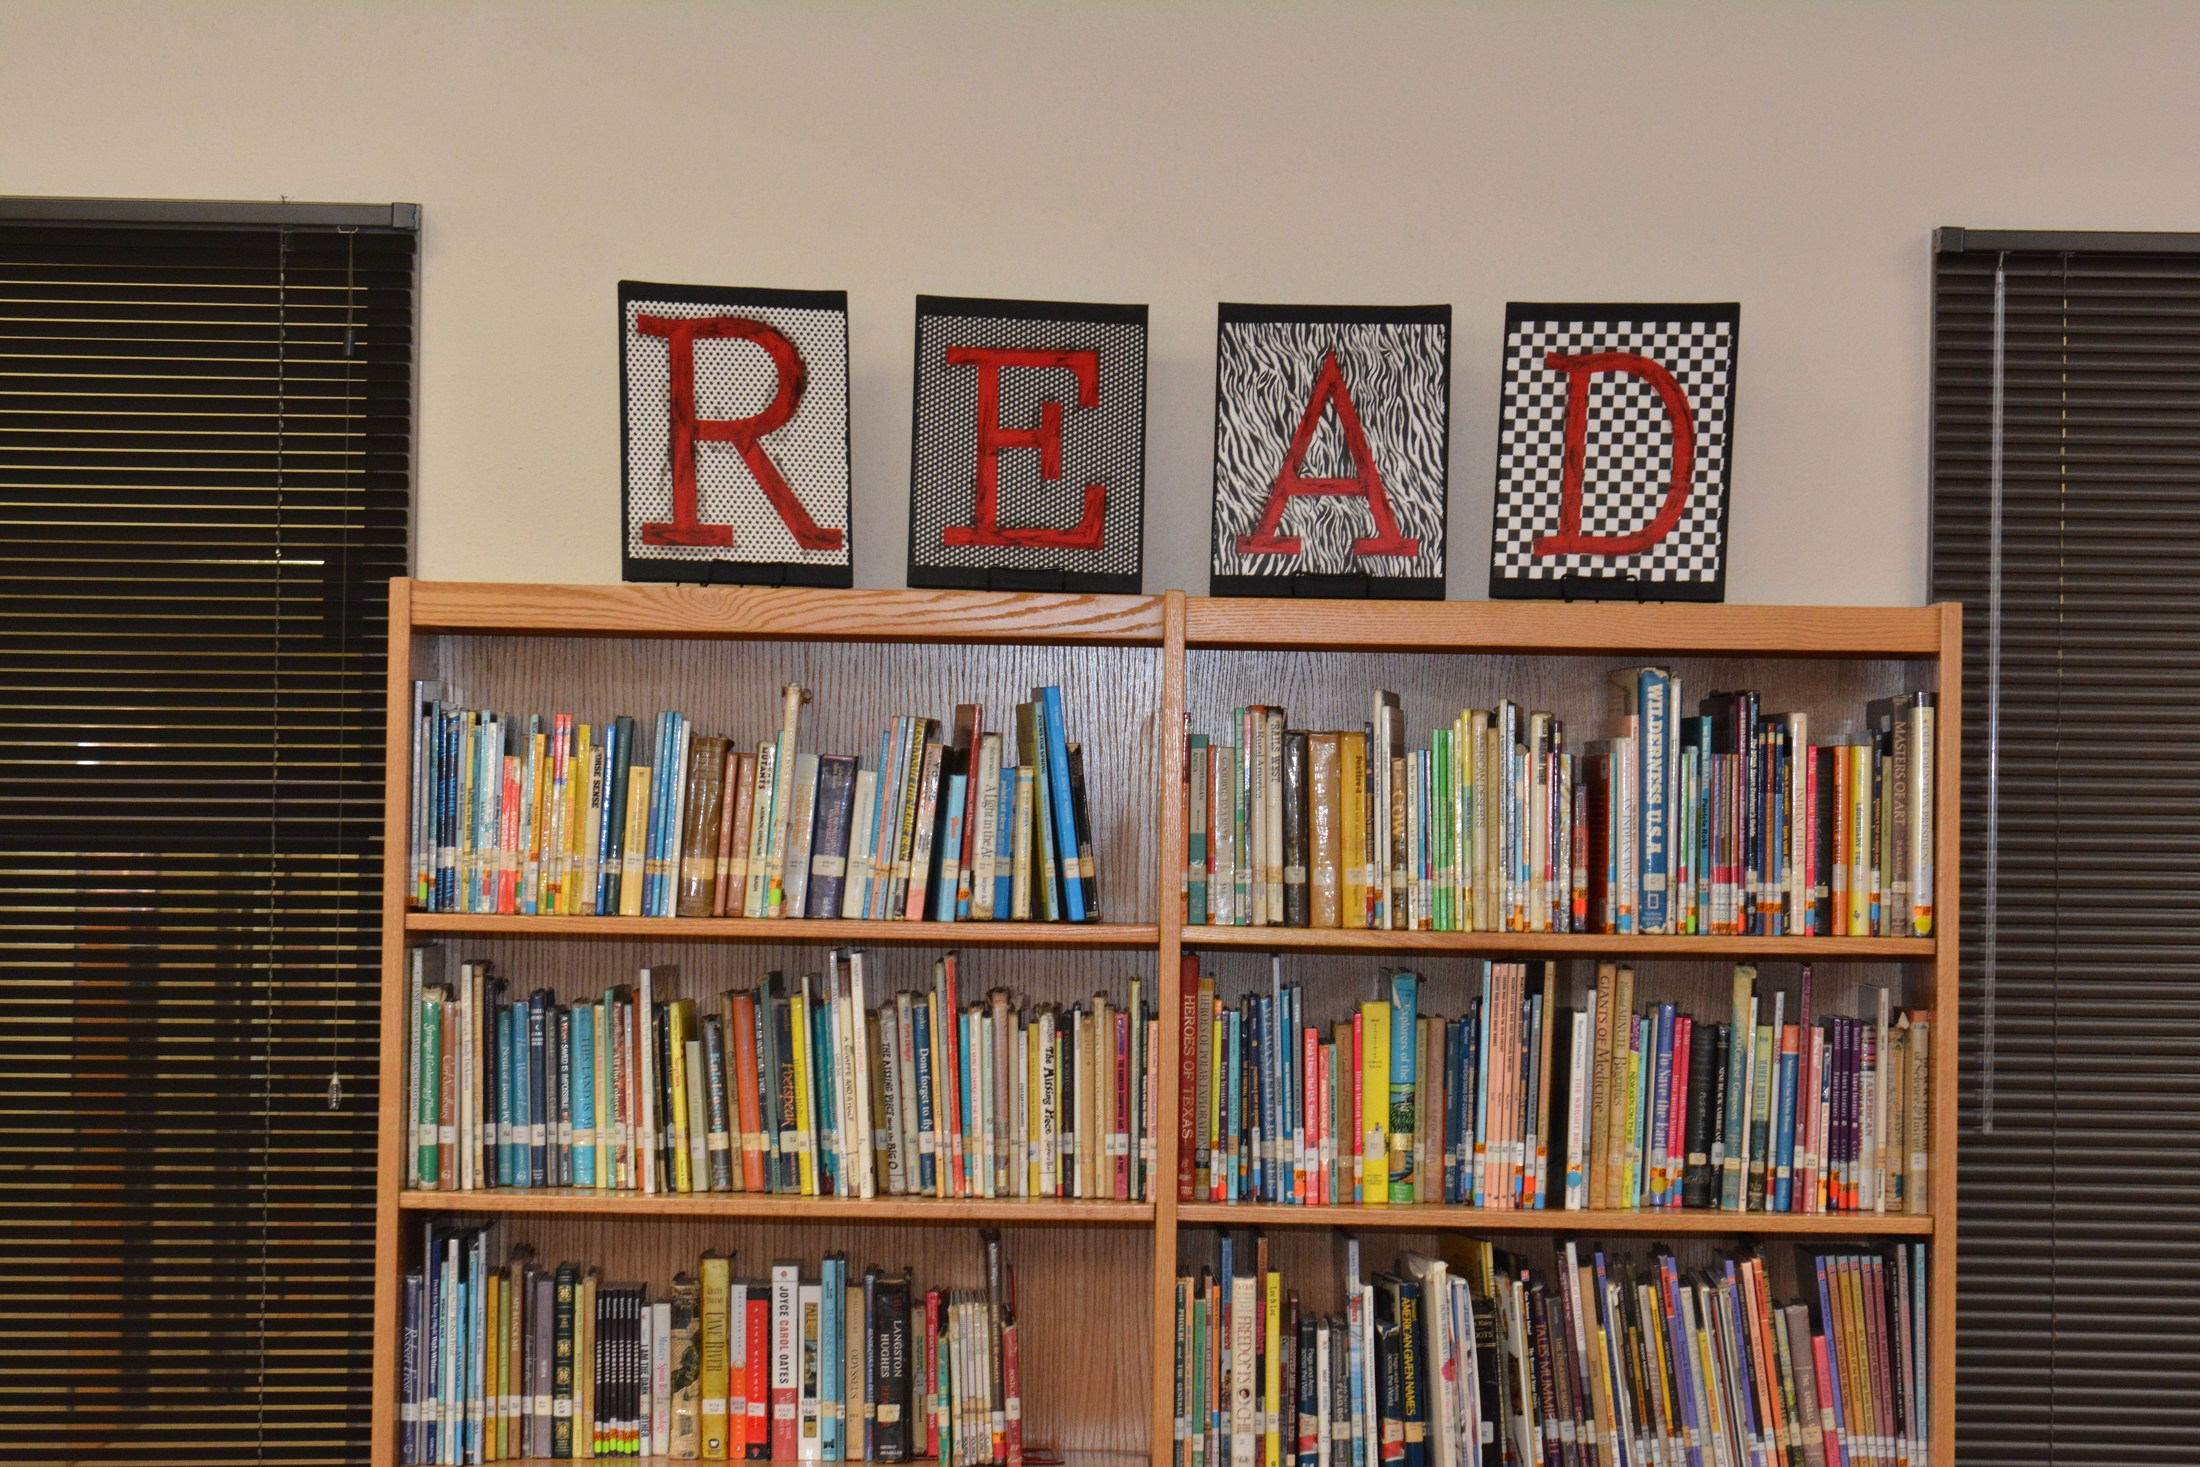 Middle School Library with READ above the shelf.